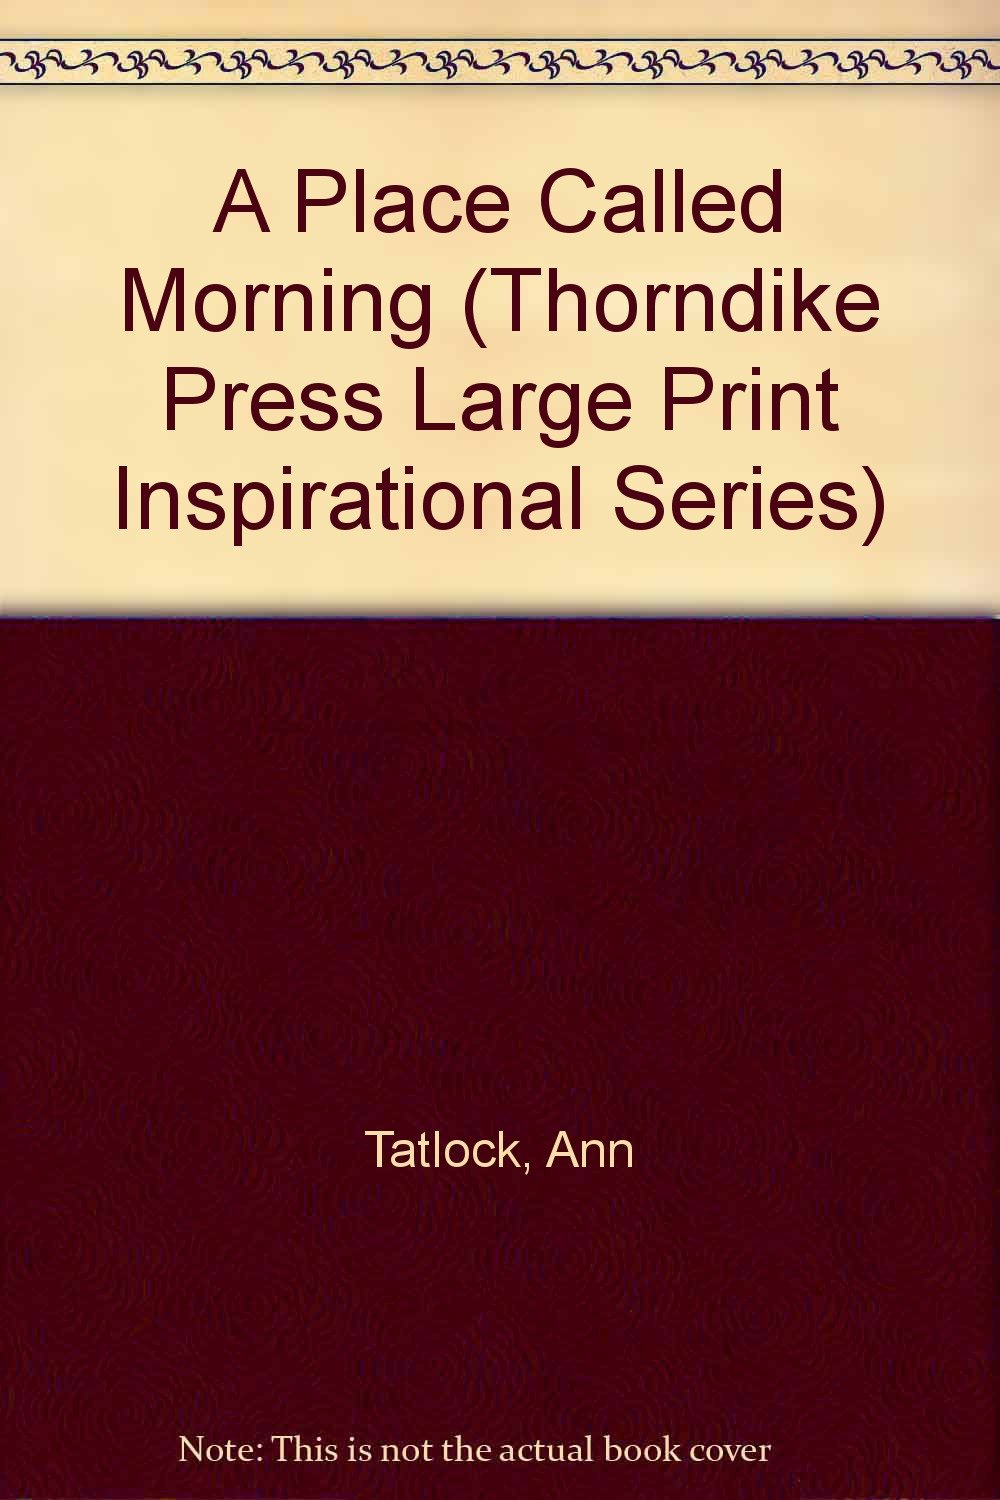 A Place Called Morning (Thorndike Large Print Inspirational Series) PDF